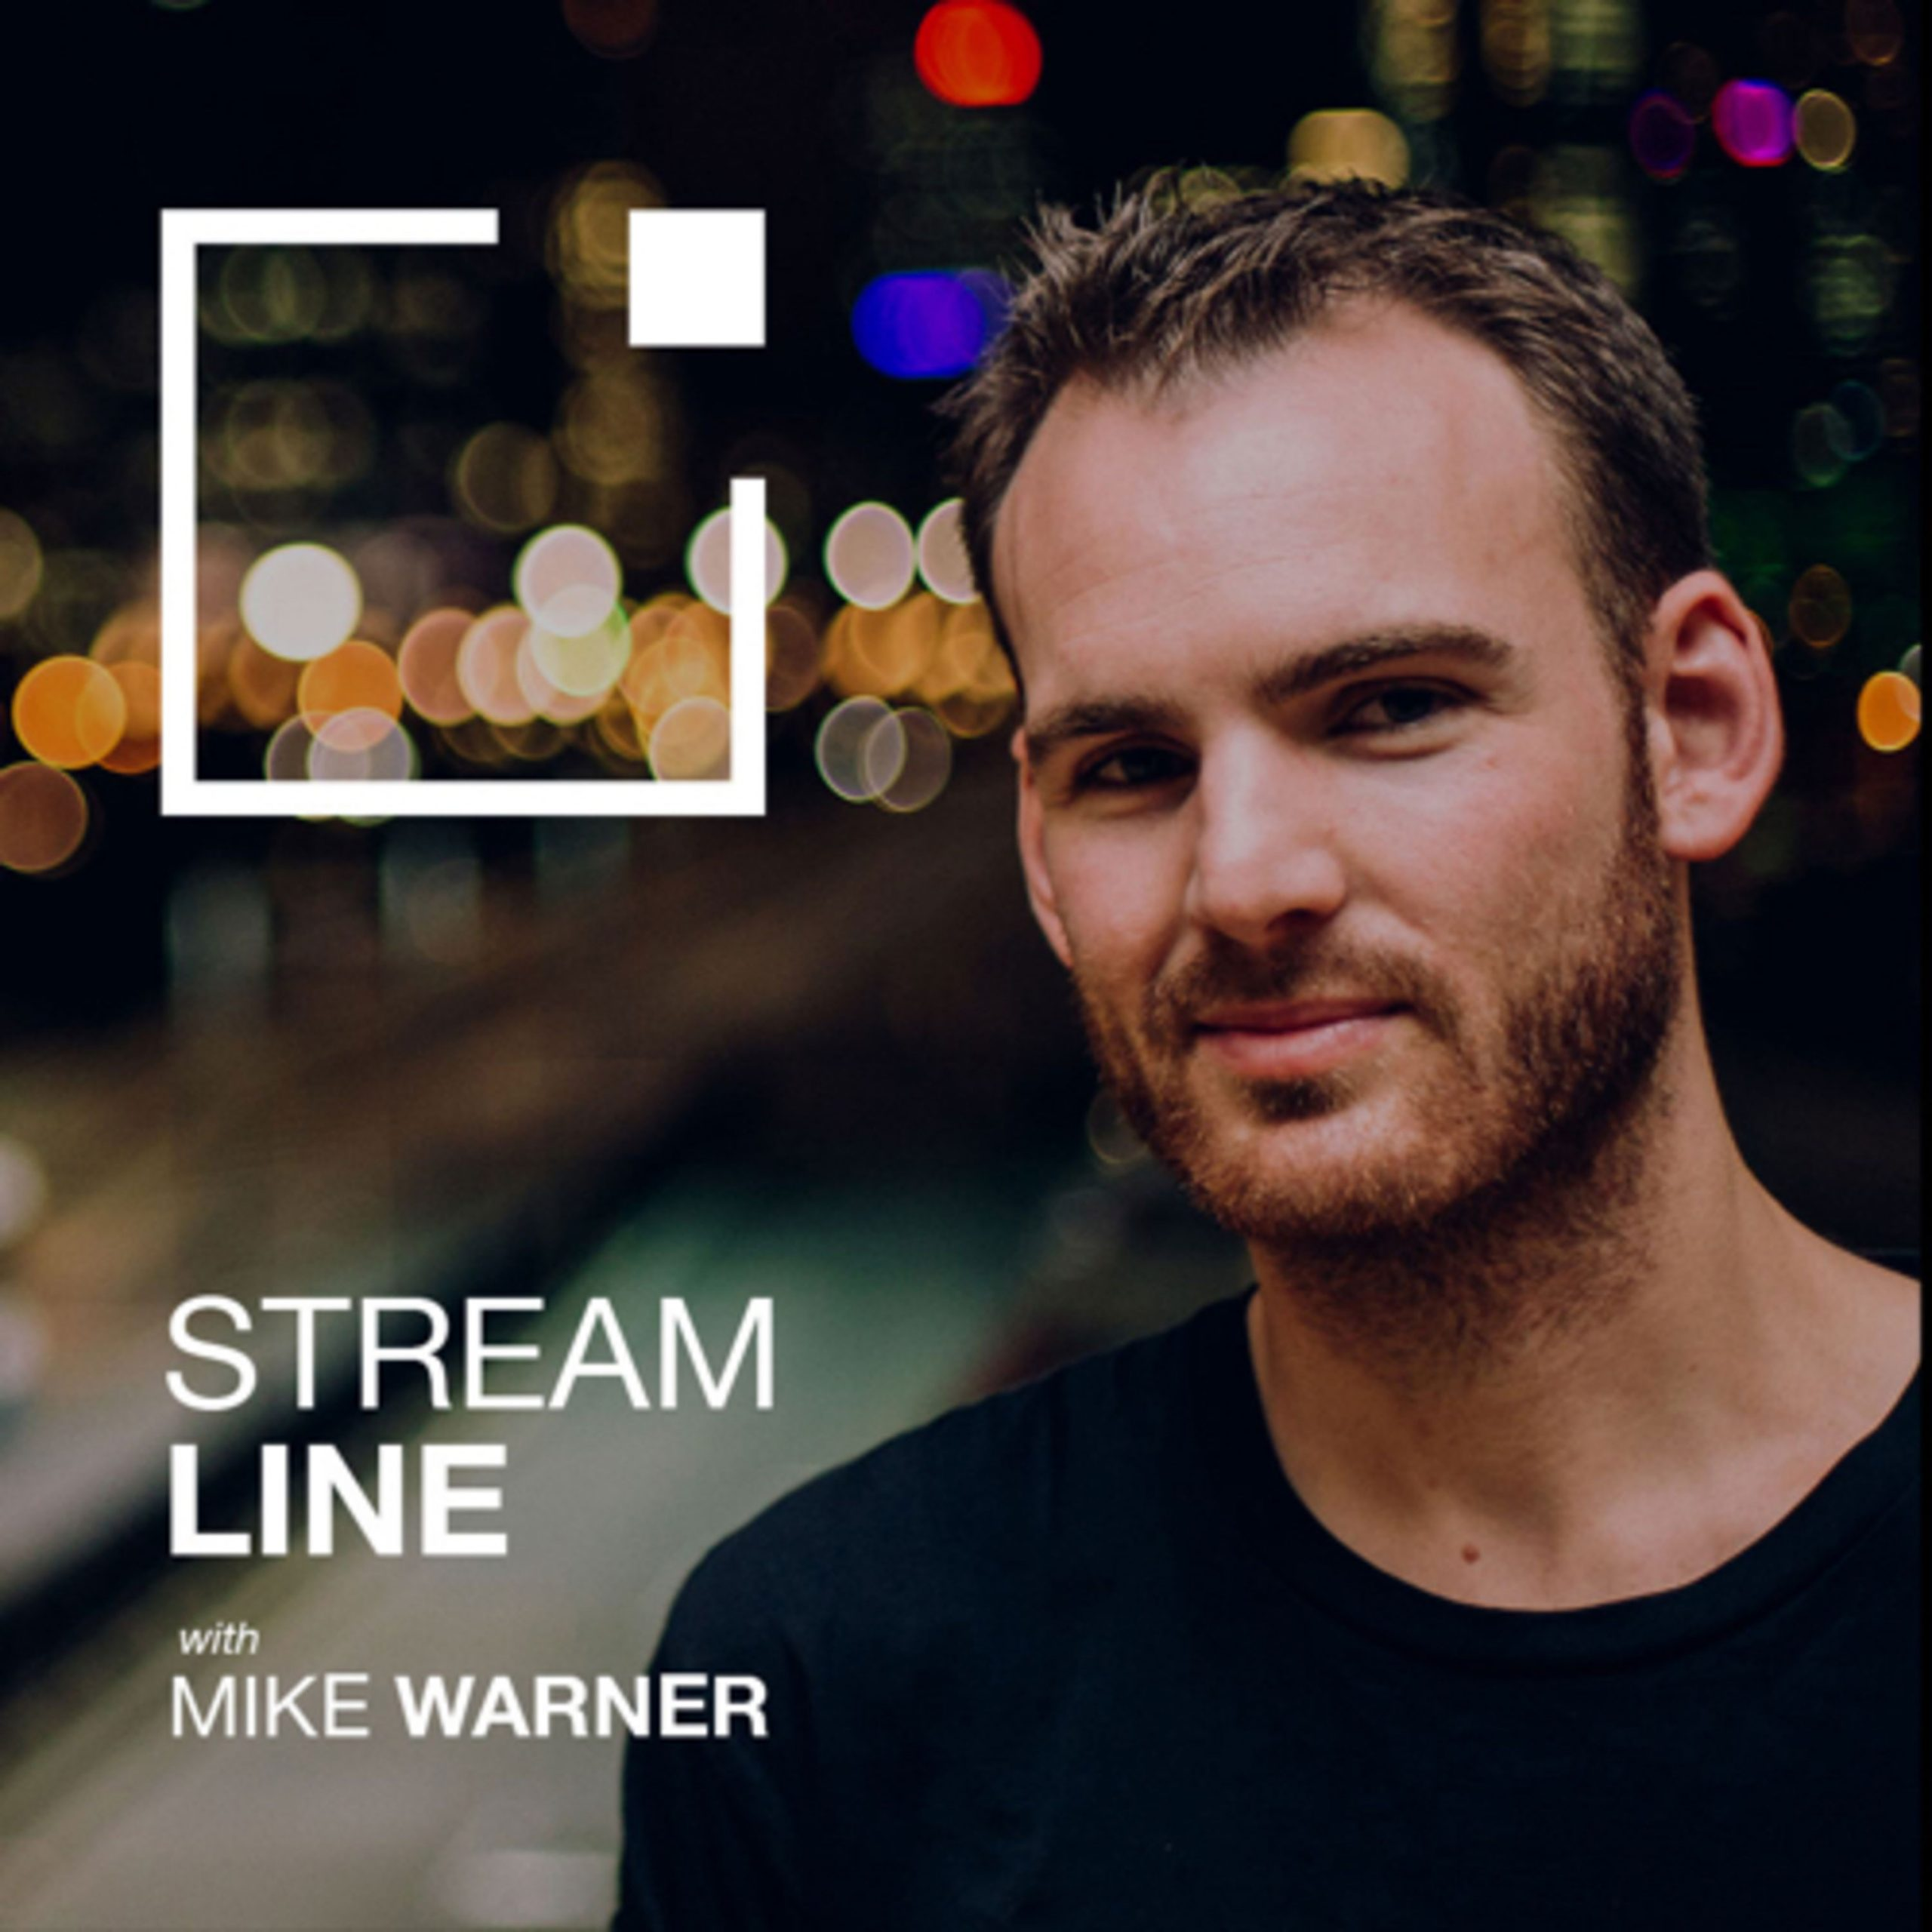 Streamline Podcast by Mike Warner